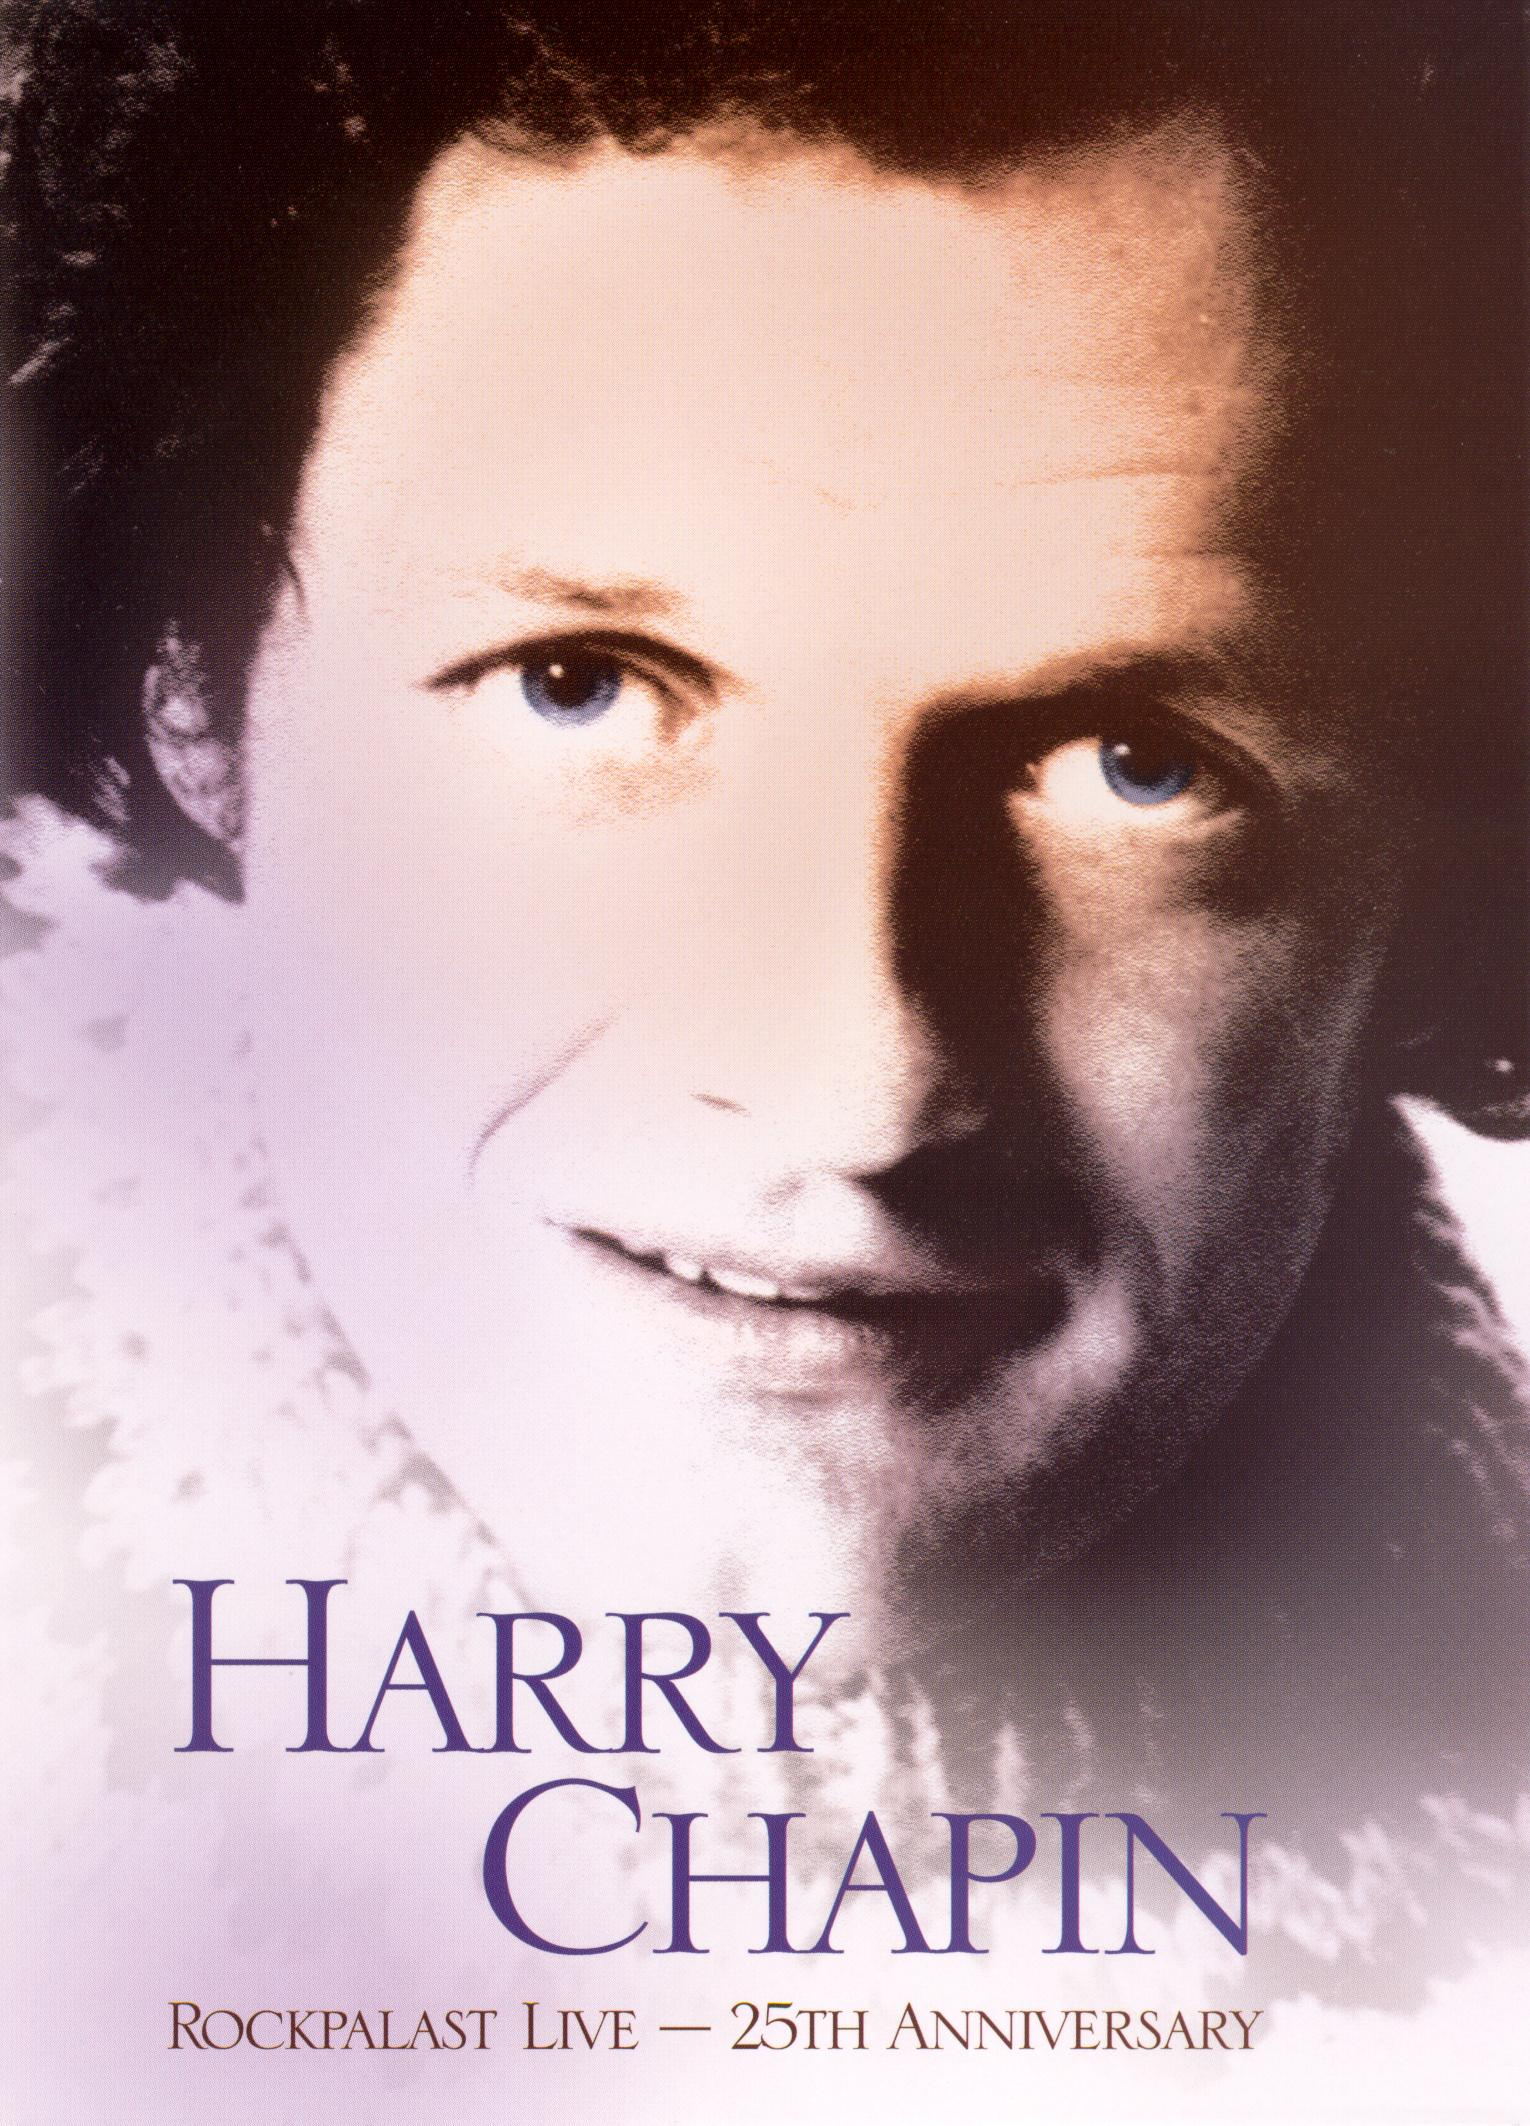 Harry Chapin: Rockpalast Live - 25th Anniversary